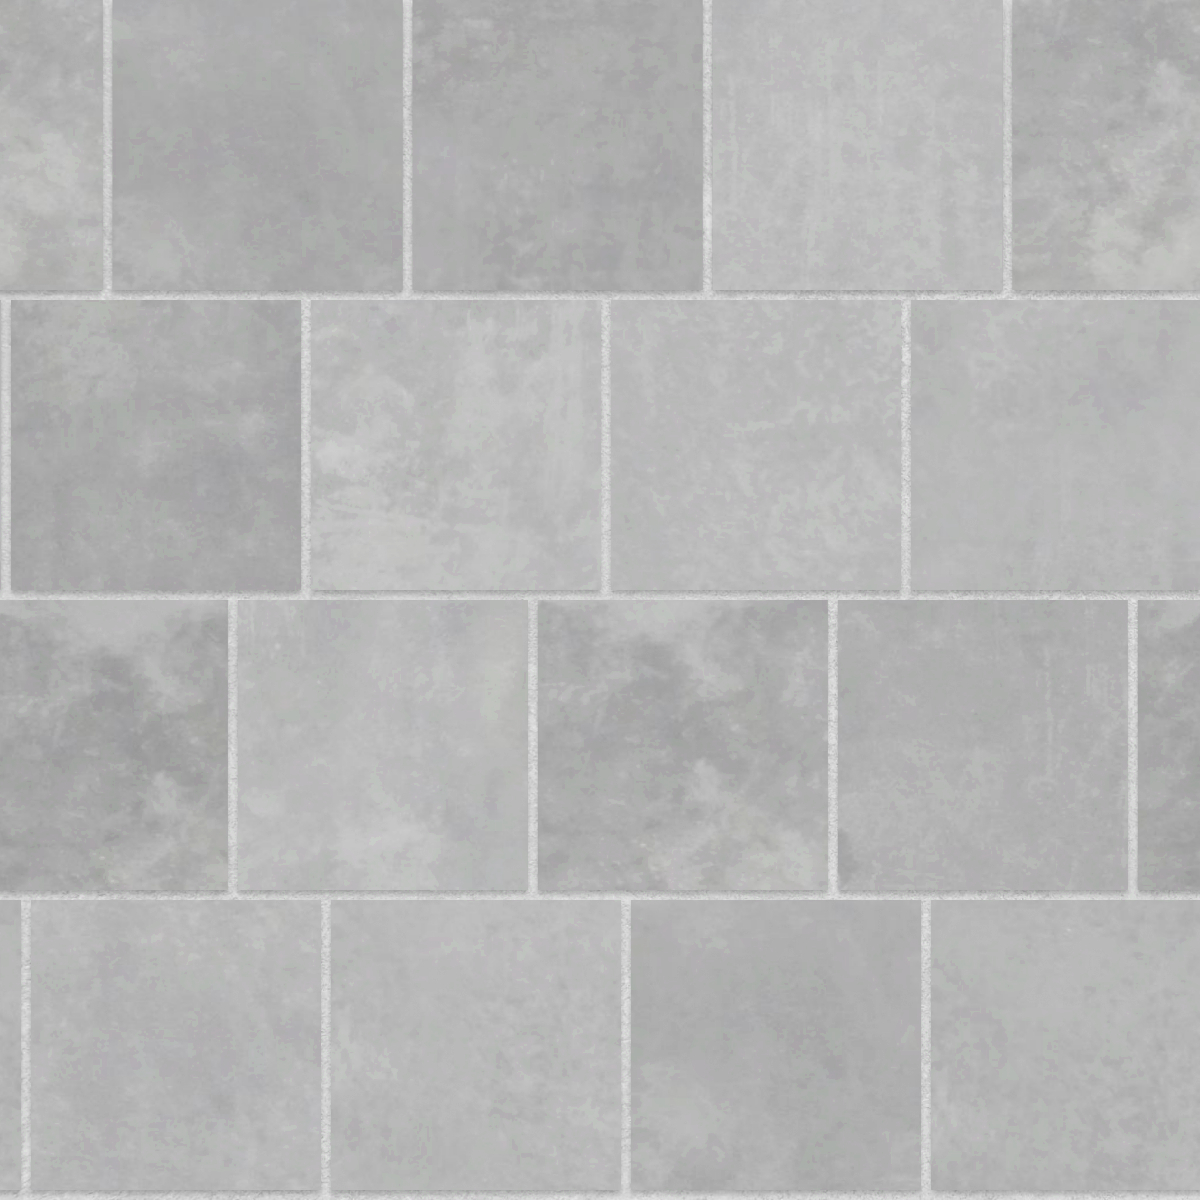 A seamless concrete texture with polished concrete blocks arranged in a staggered pattern